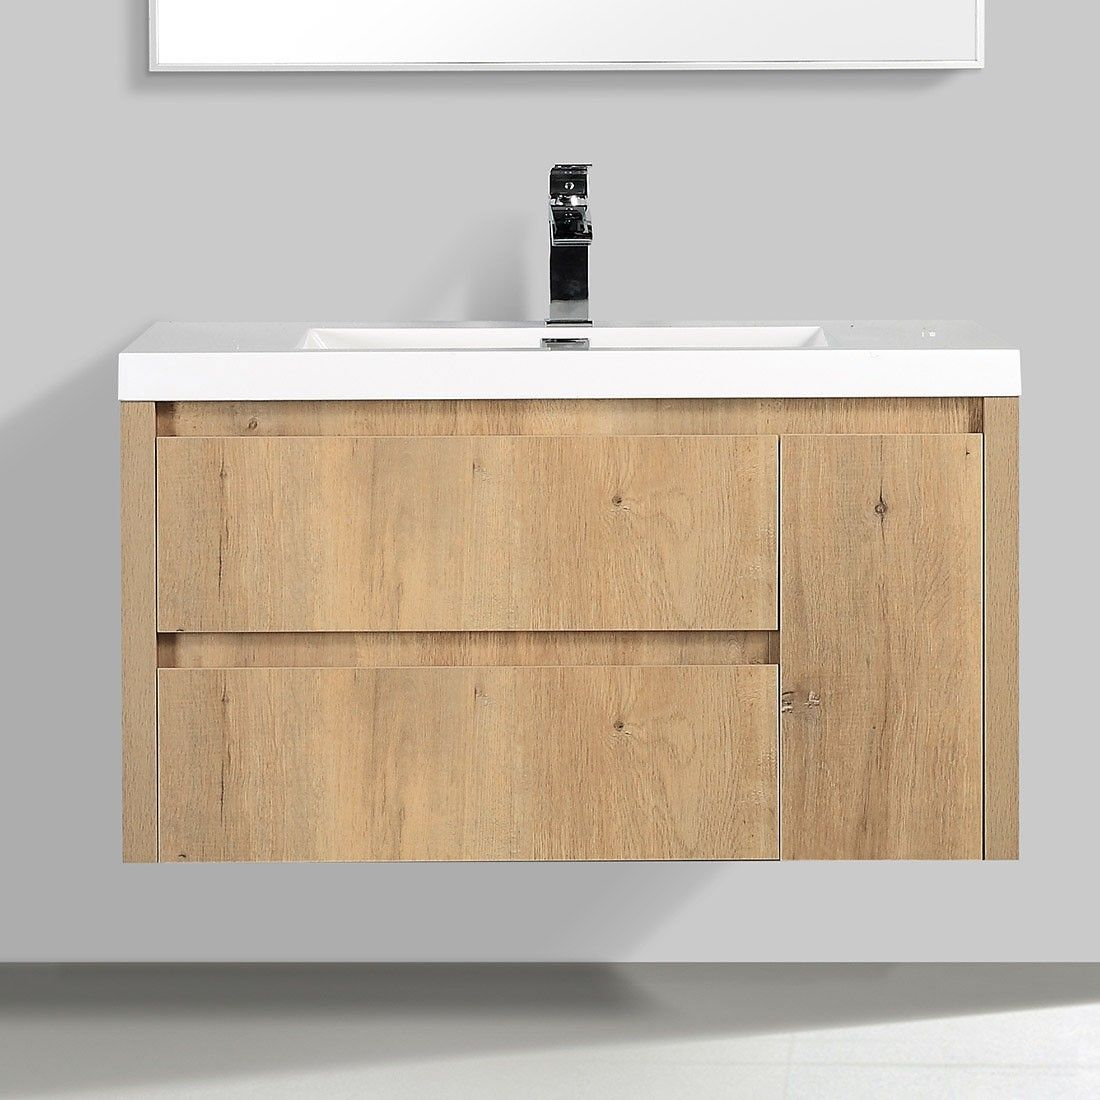 Purchase Online Quality New 90 Ove Oak Wood Modern Wall Hung Vanity Bathroom Cabinet Wall Hung Vanity Bathroom Vanity Cabinets Modern Bathroom Vanity Wood